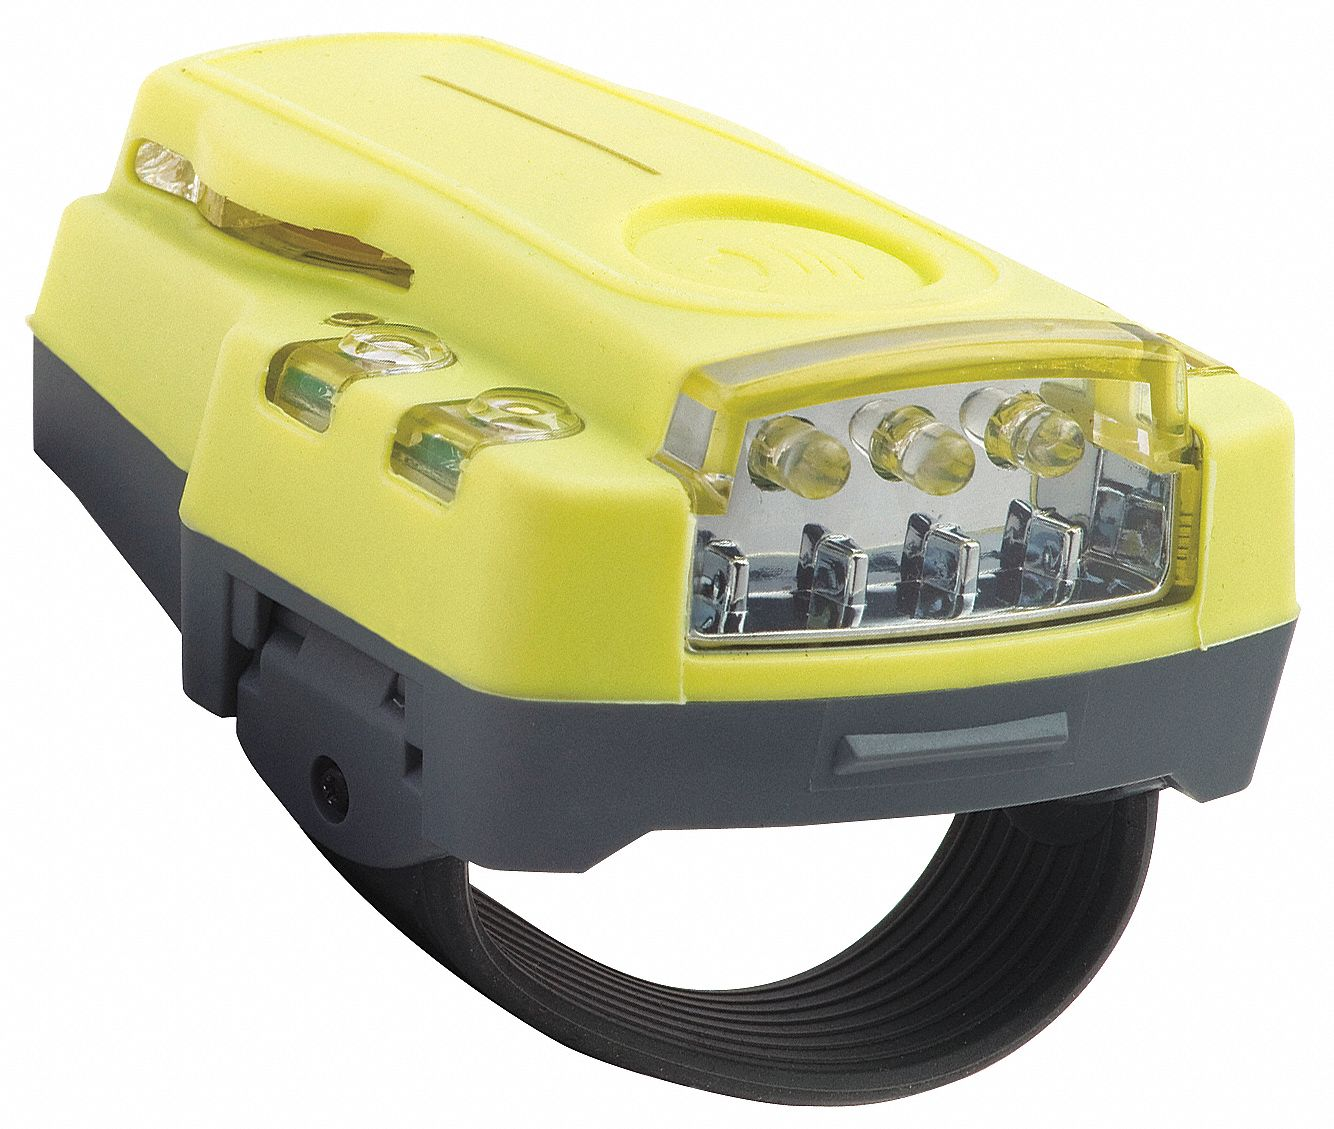 LED Hands Free Light, Plastic, Yellow, 3.5 in